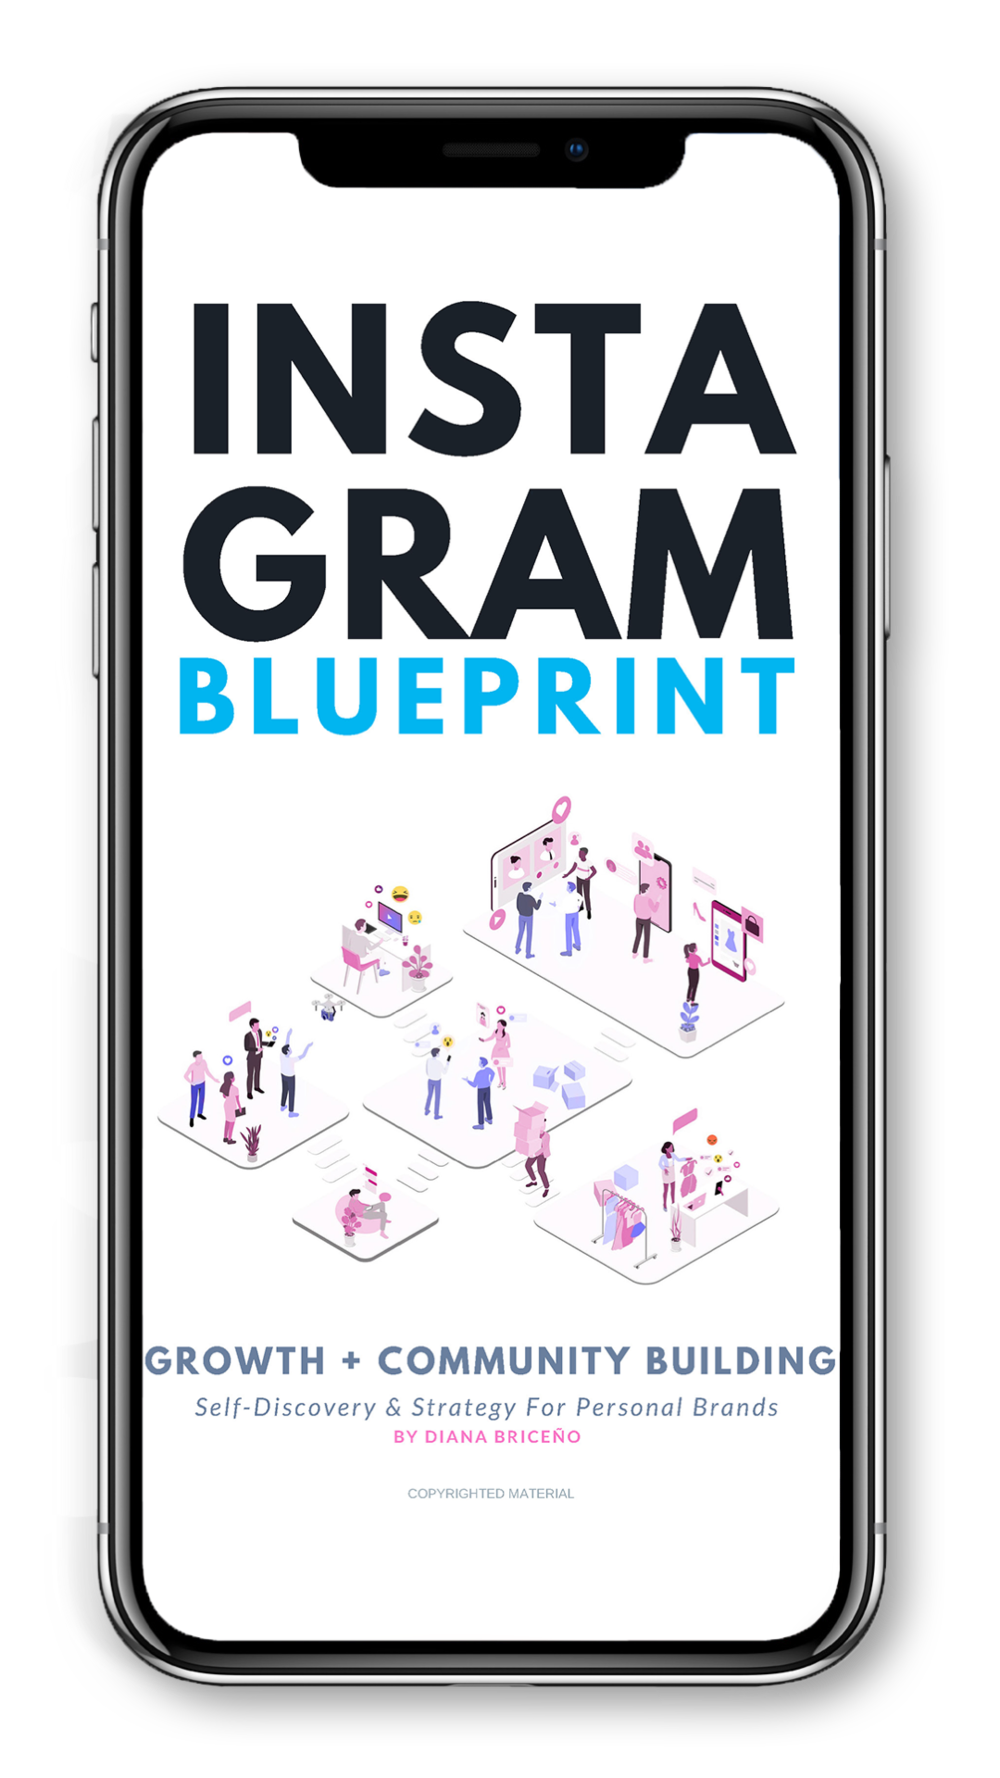 Instagram growth minus the crazy guesswork - No more feeling lost and figuring out how all the pieces fit together. The Instagram Blueprint is the ultimate hands-on guide for building a heart-centered personal brand on Instagram.The cherry on top? You get to have  your  questions answered by me on a 1:1 call after you finish the book! You also get lifetime access to all Instagram Blueprint updates.